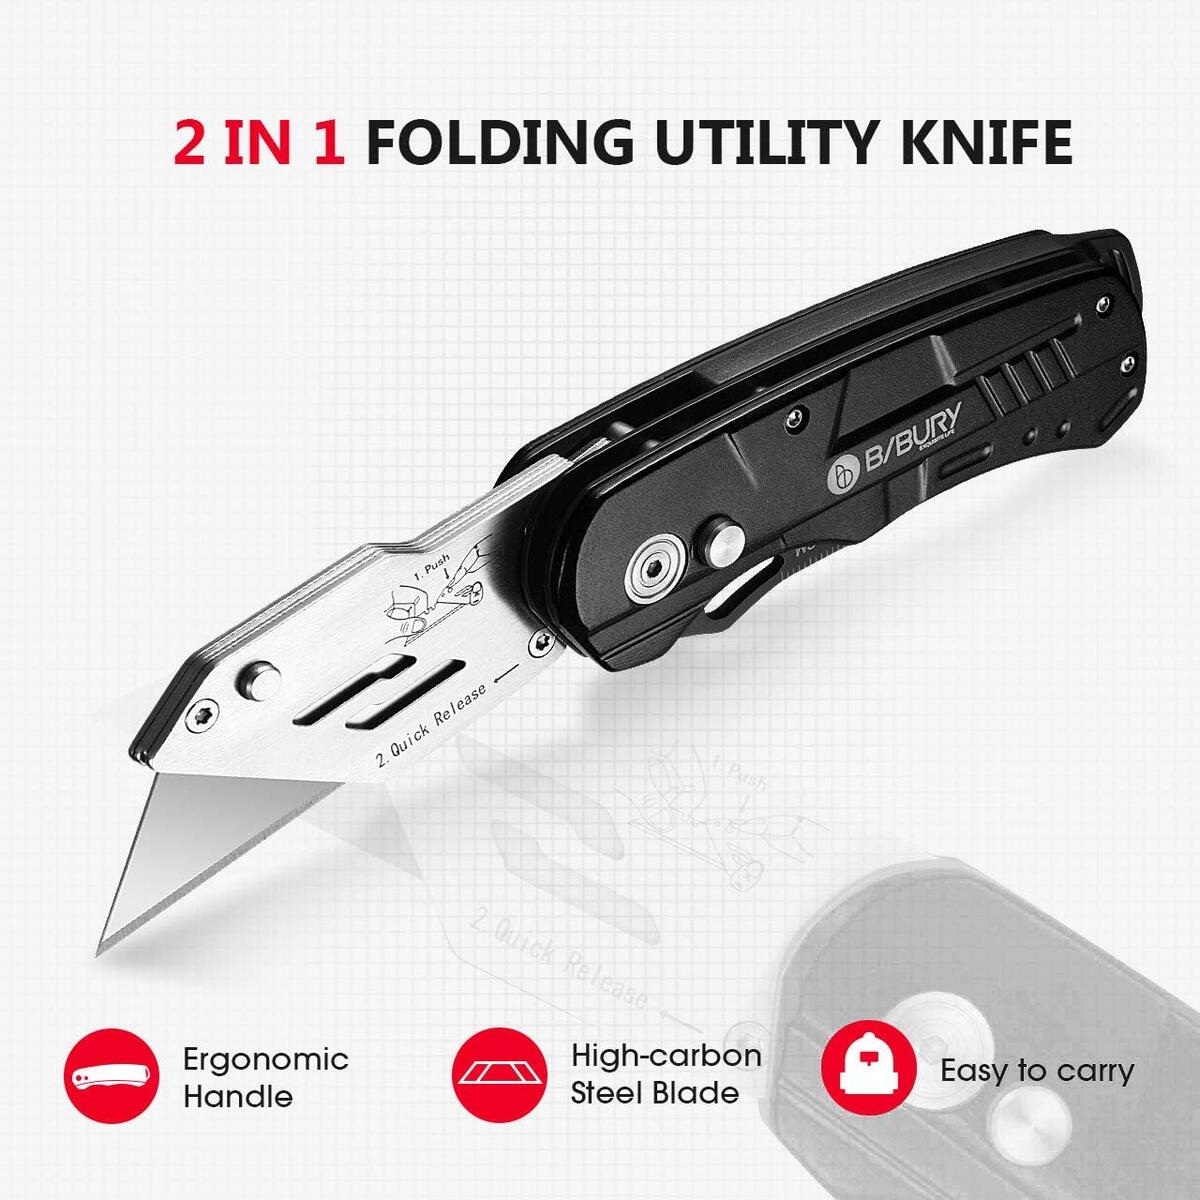 Utility Knife, BIBURY Multipurpose Carpet Knife, Double Cutter Head,Box Cutter with 10 Replaceable SK5 Stainless Steel Blades, Belt Clip,Quick Change and Safely Lock-Back Design (black)